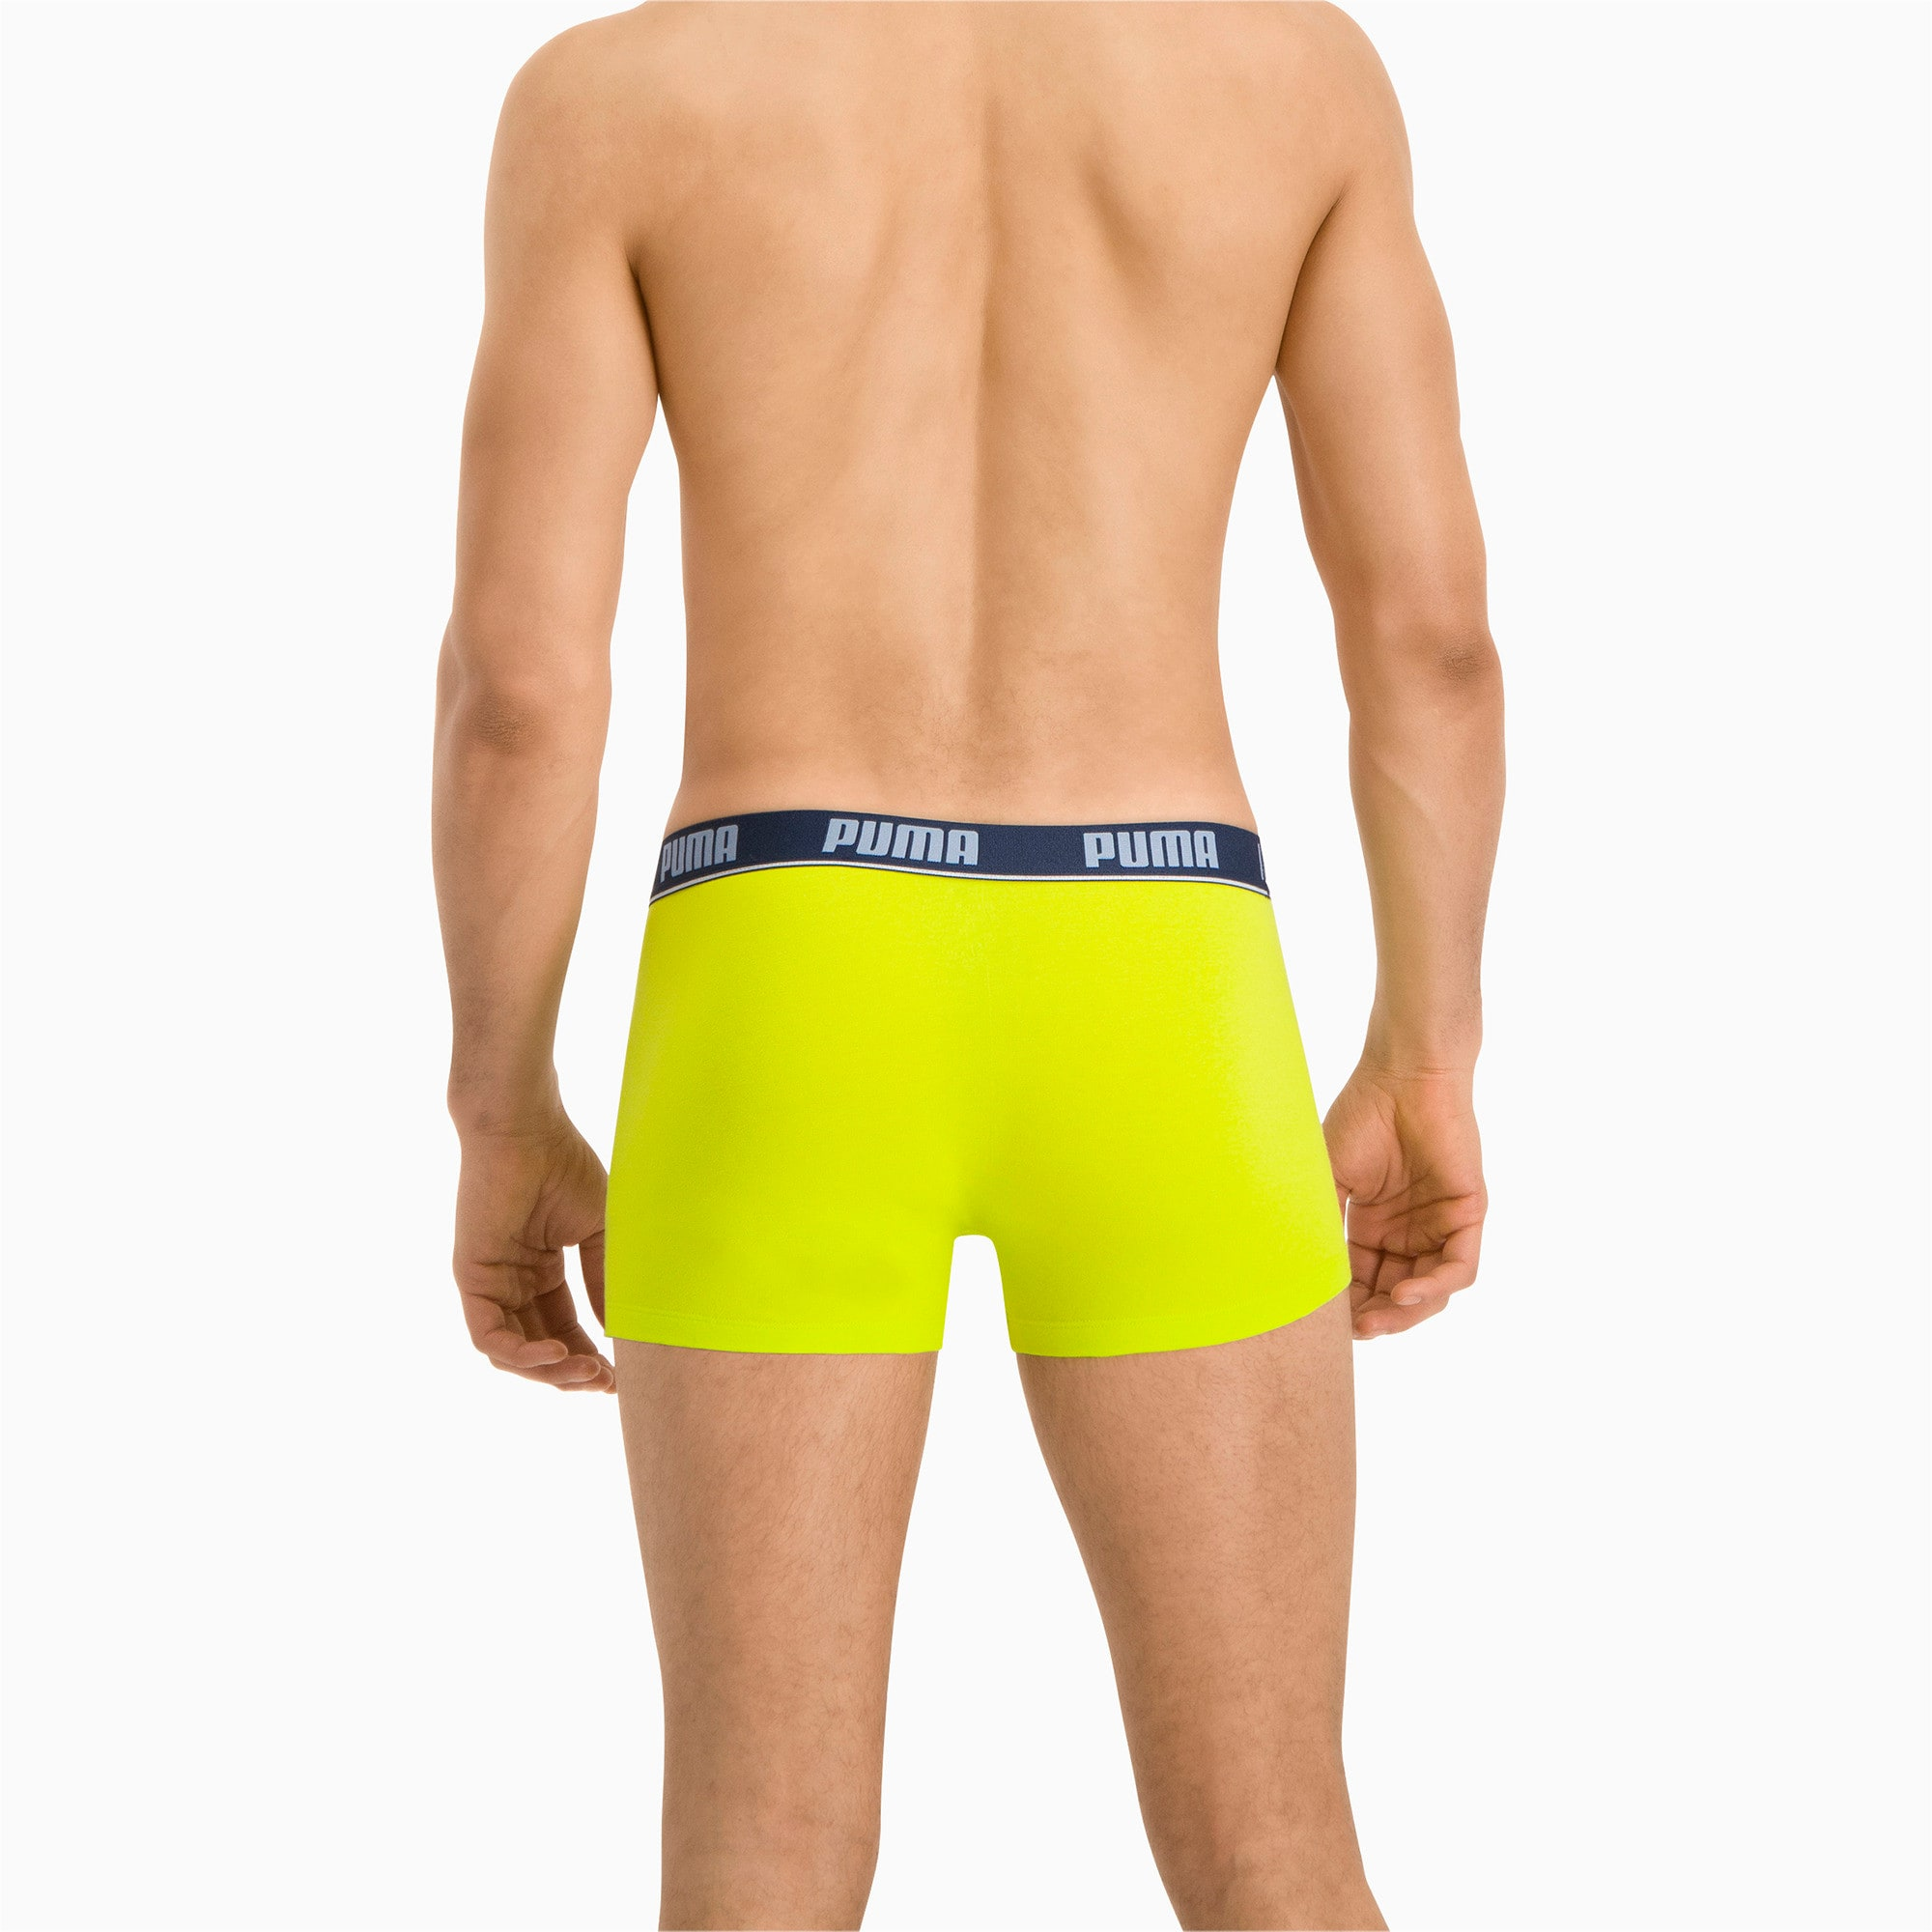 Thumbnail 4 van 2 basic boxershorts, blue / lime, medium